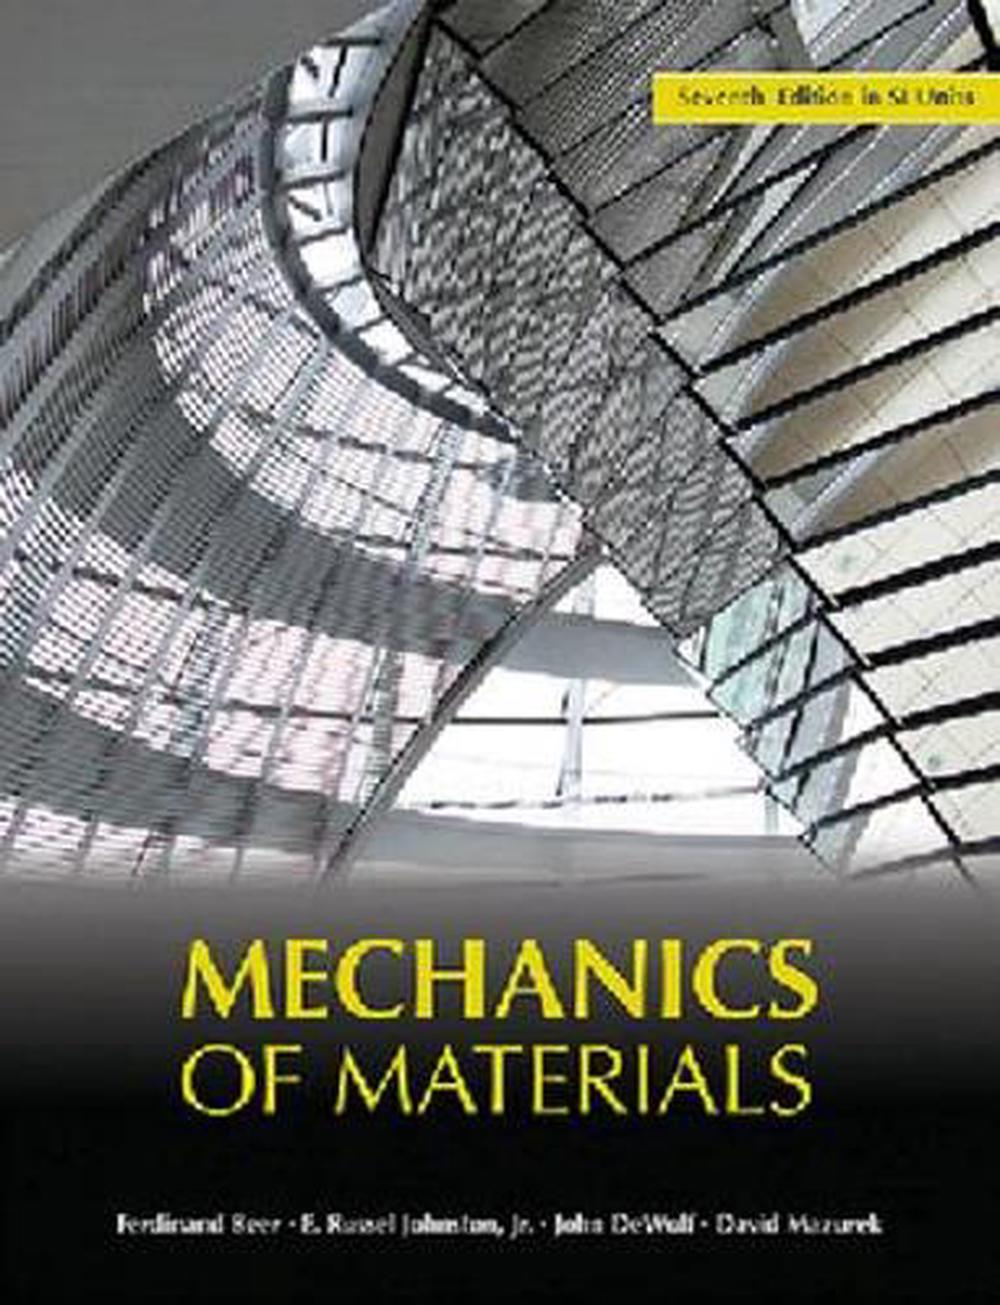 Mechanics of Materials, 7th Edition by Ferdinand P. Beer